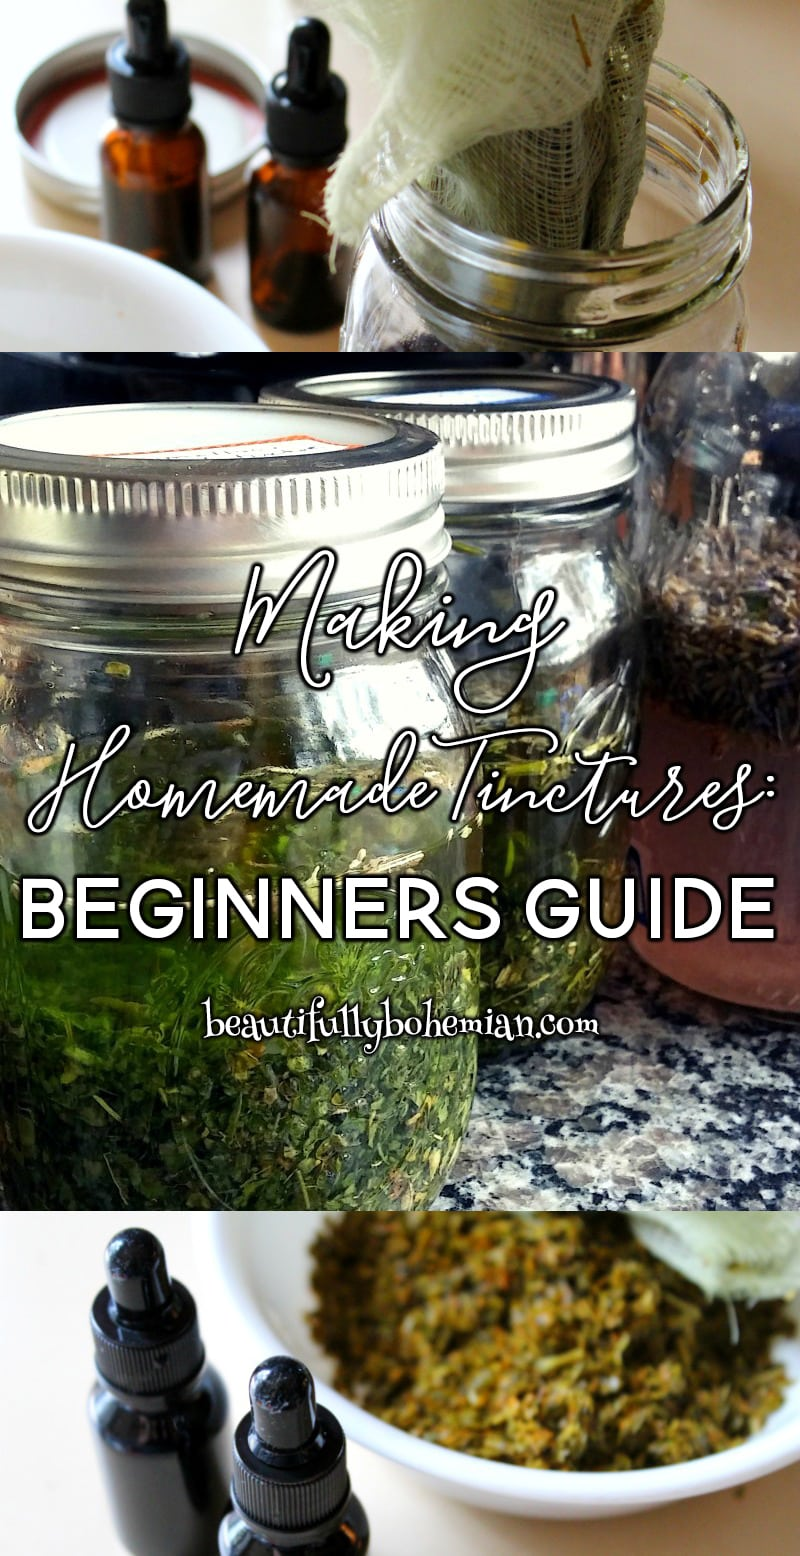 Homemade Tinctures Beginners Guide!